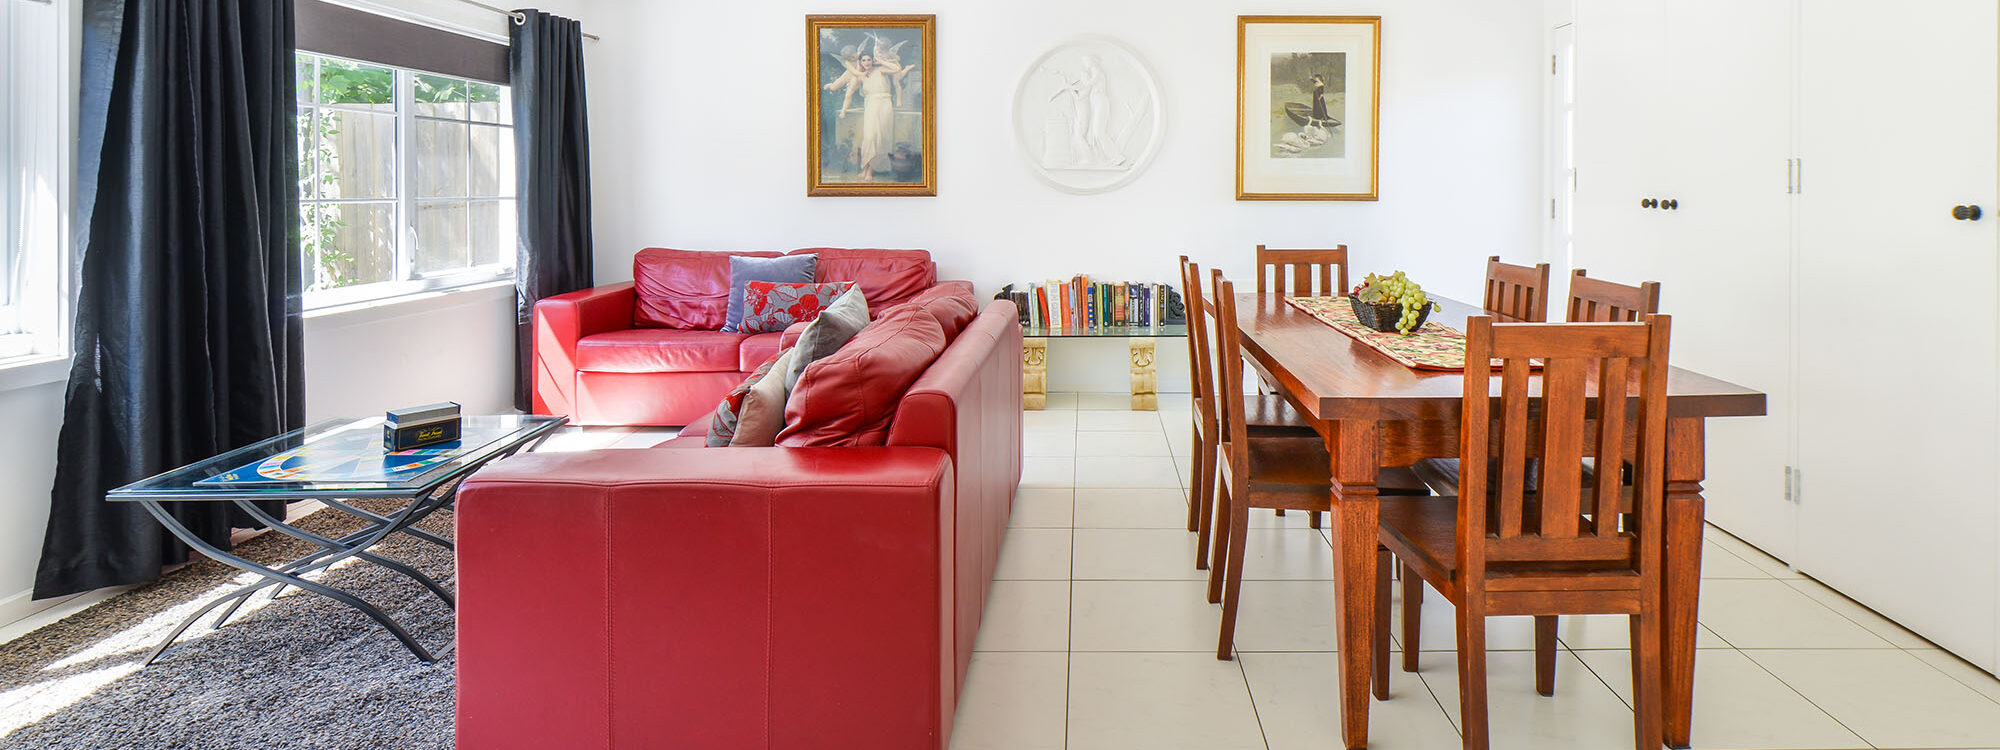 Brighton Rose - Brighton - Living Area 2